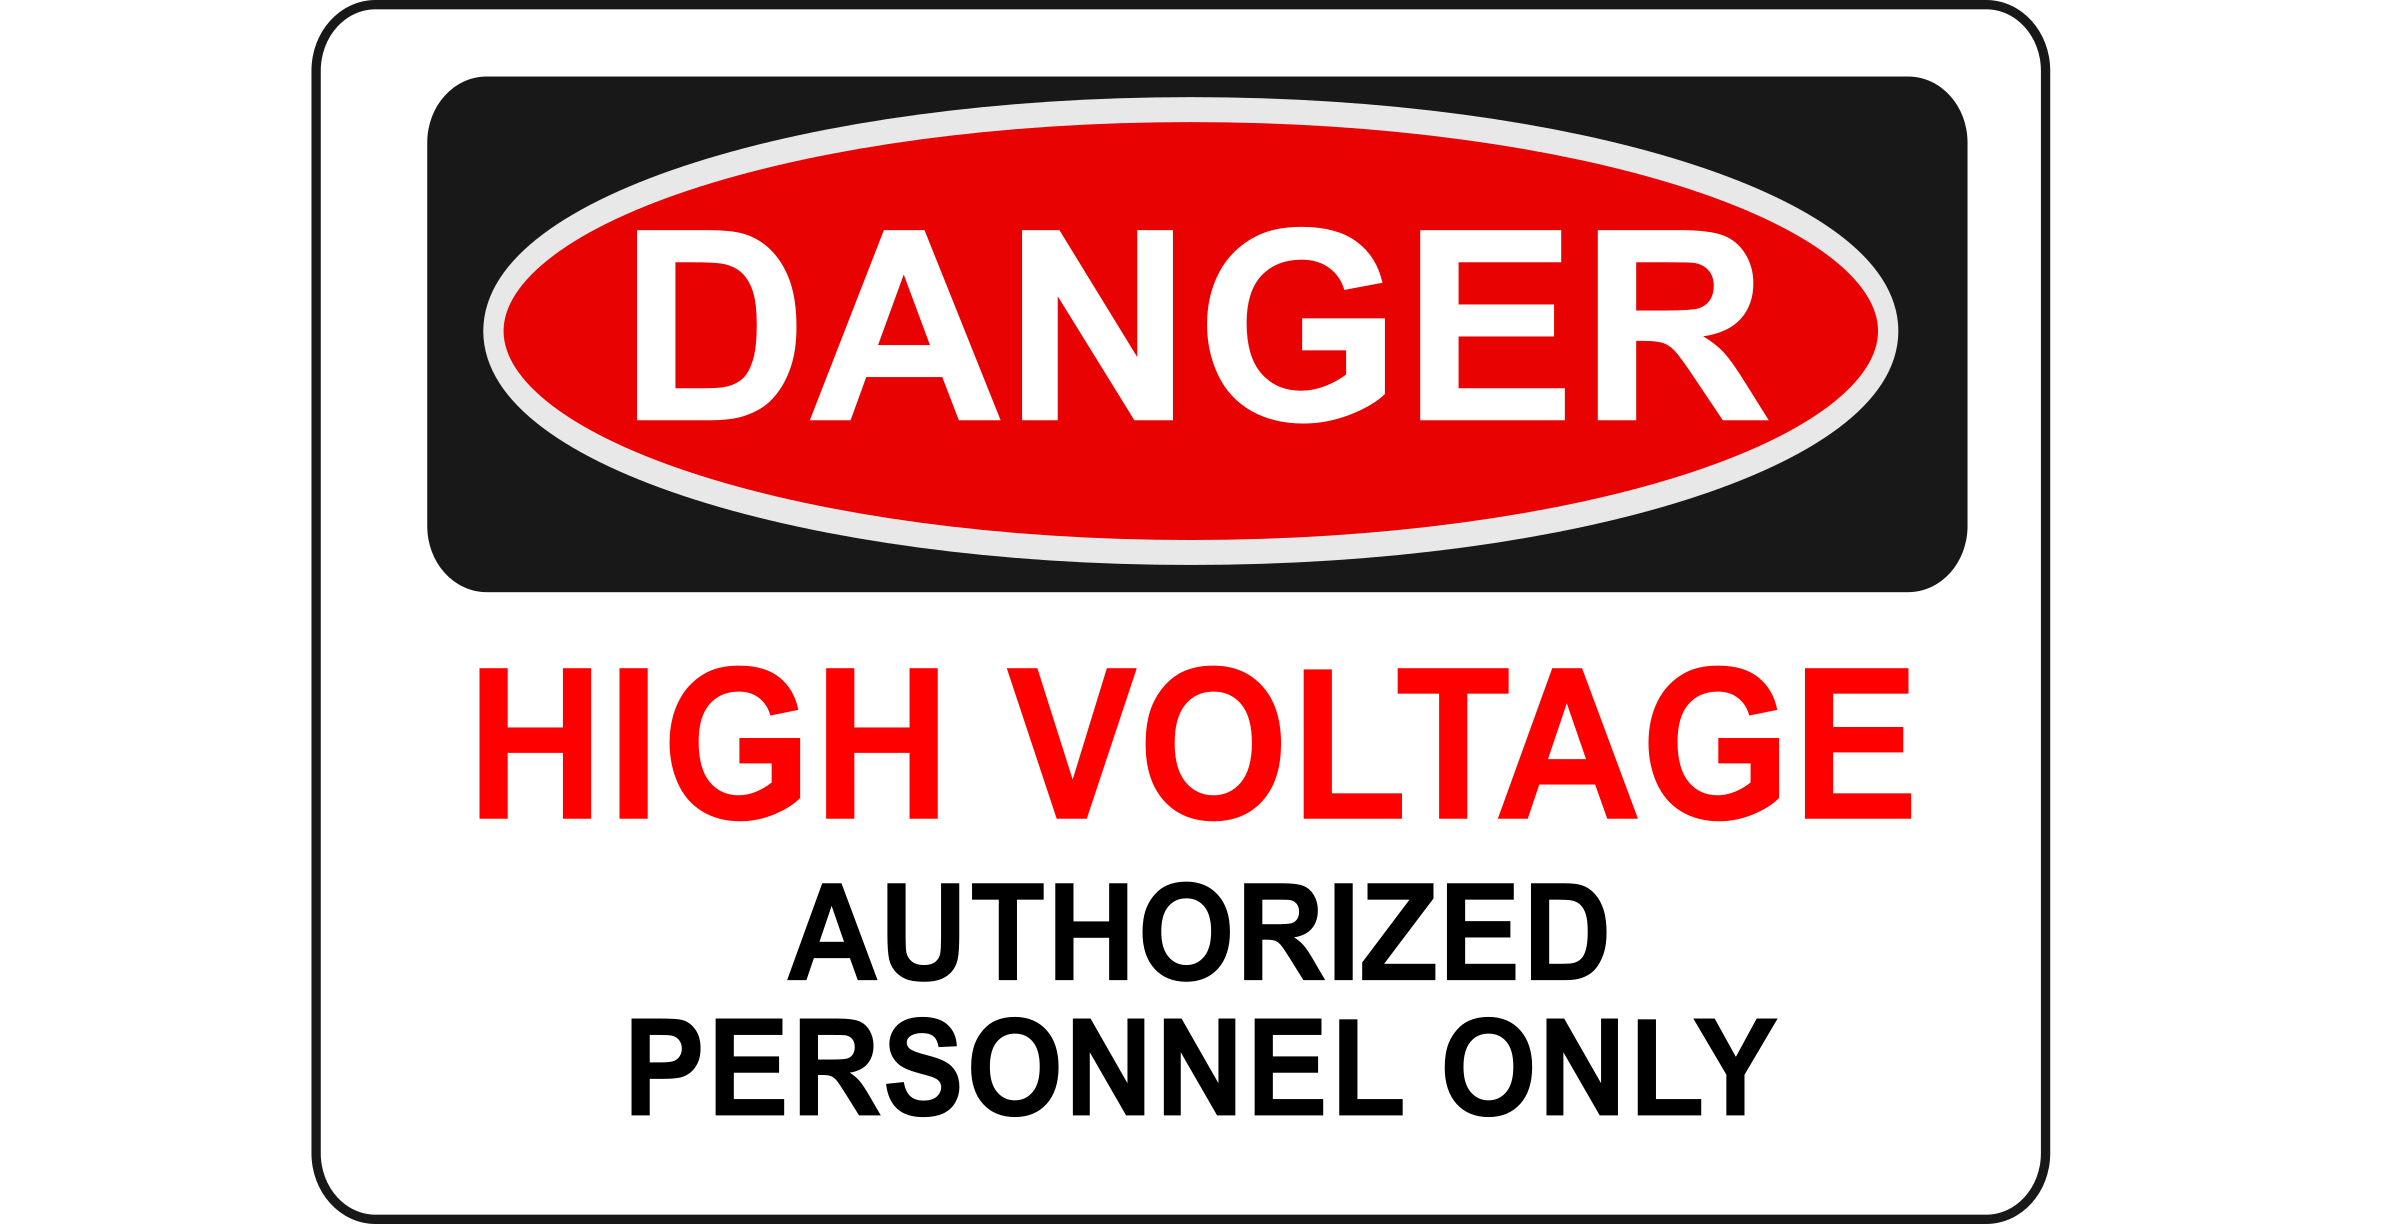 signs vector authorised personnel only